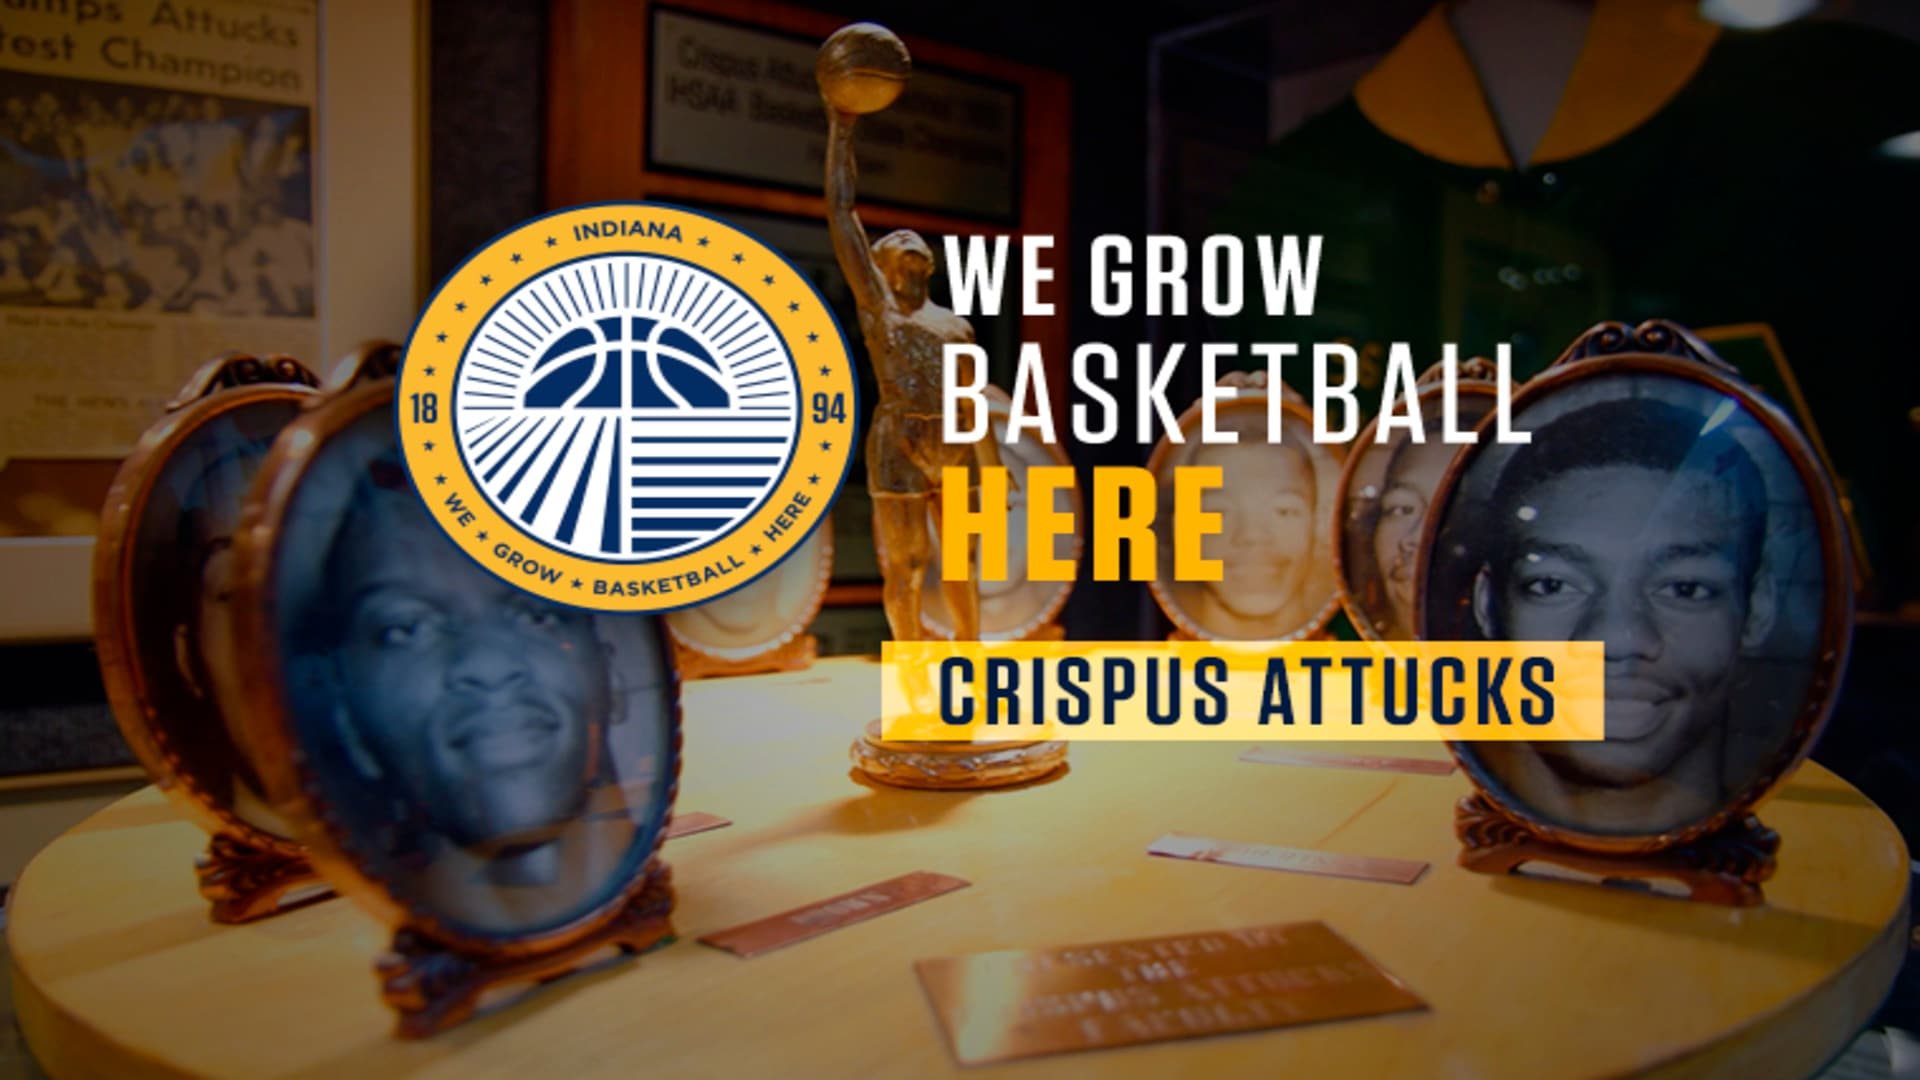 Crispus Attucks High School - We Grow Basketball Here Ep. 3 (Part 1)